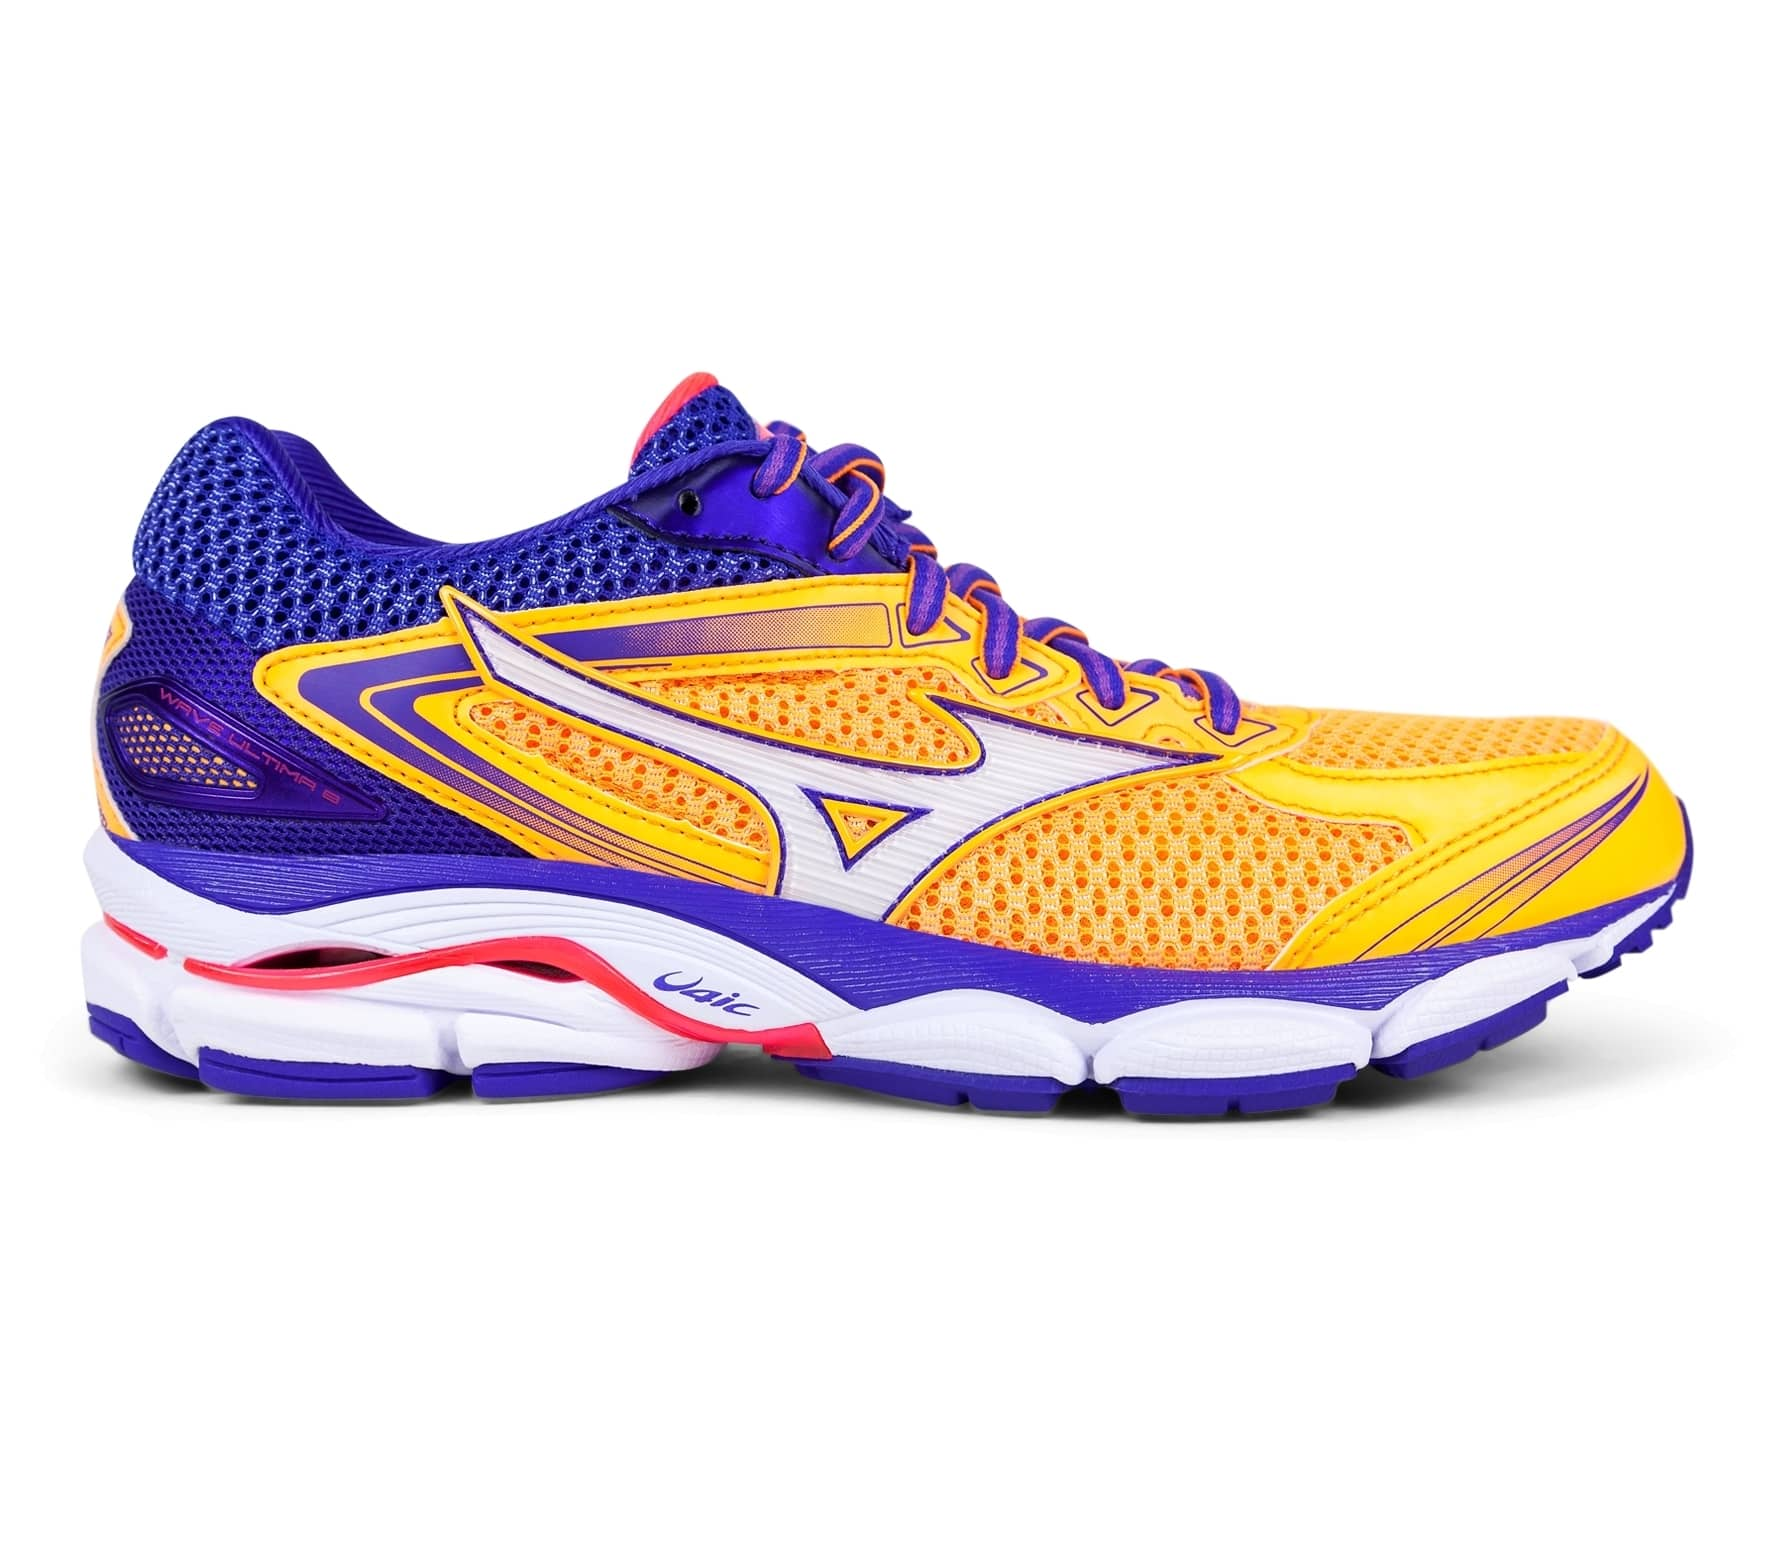 c04a55753bc9 mizuno wave ultima 8 | ventes flash